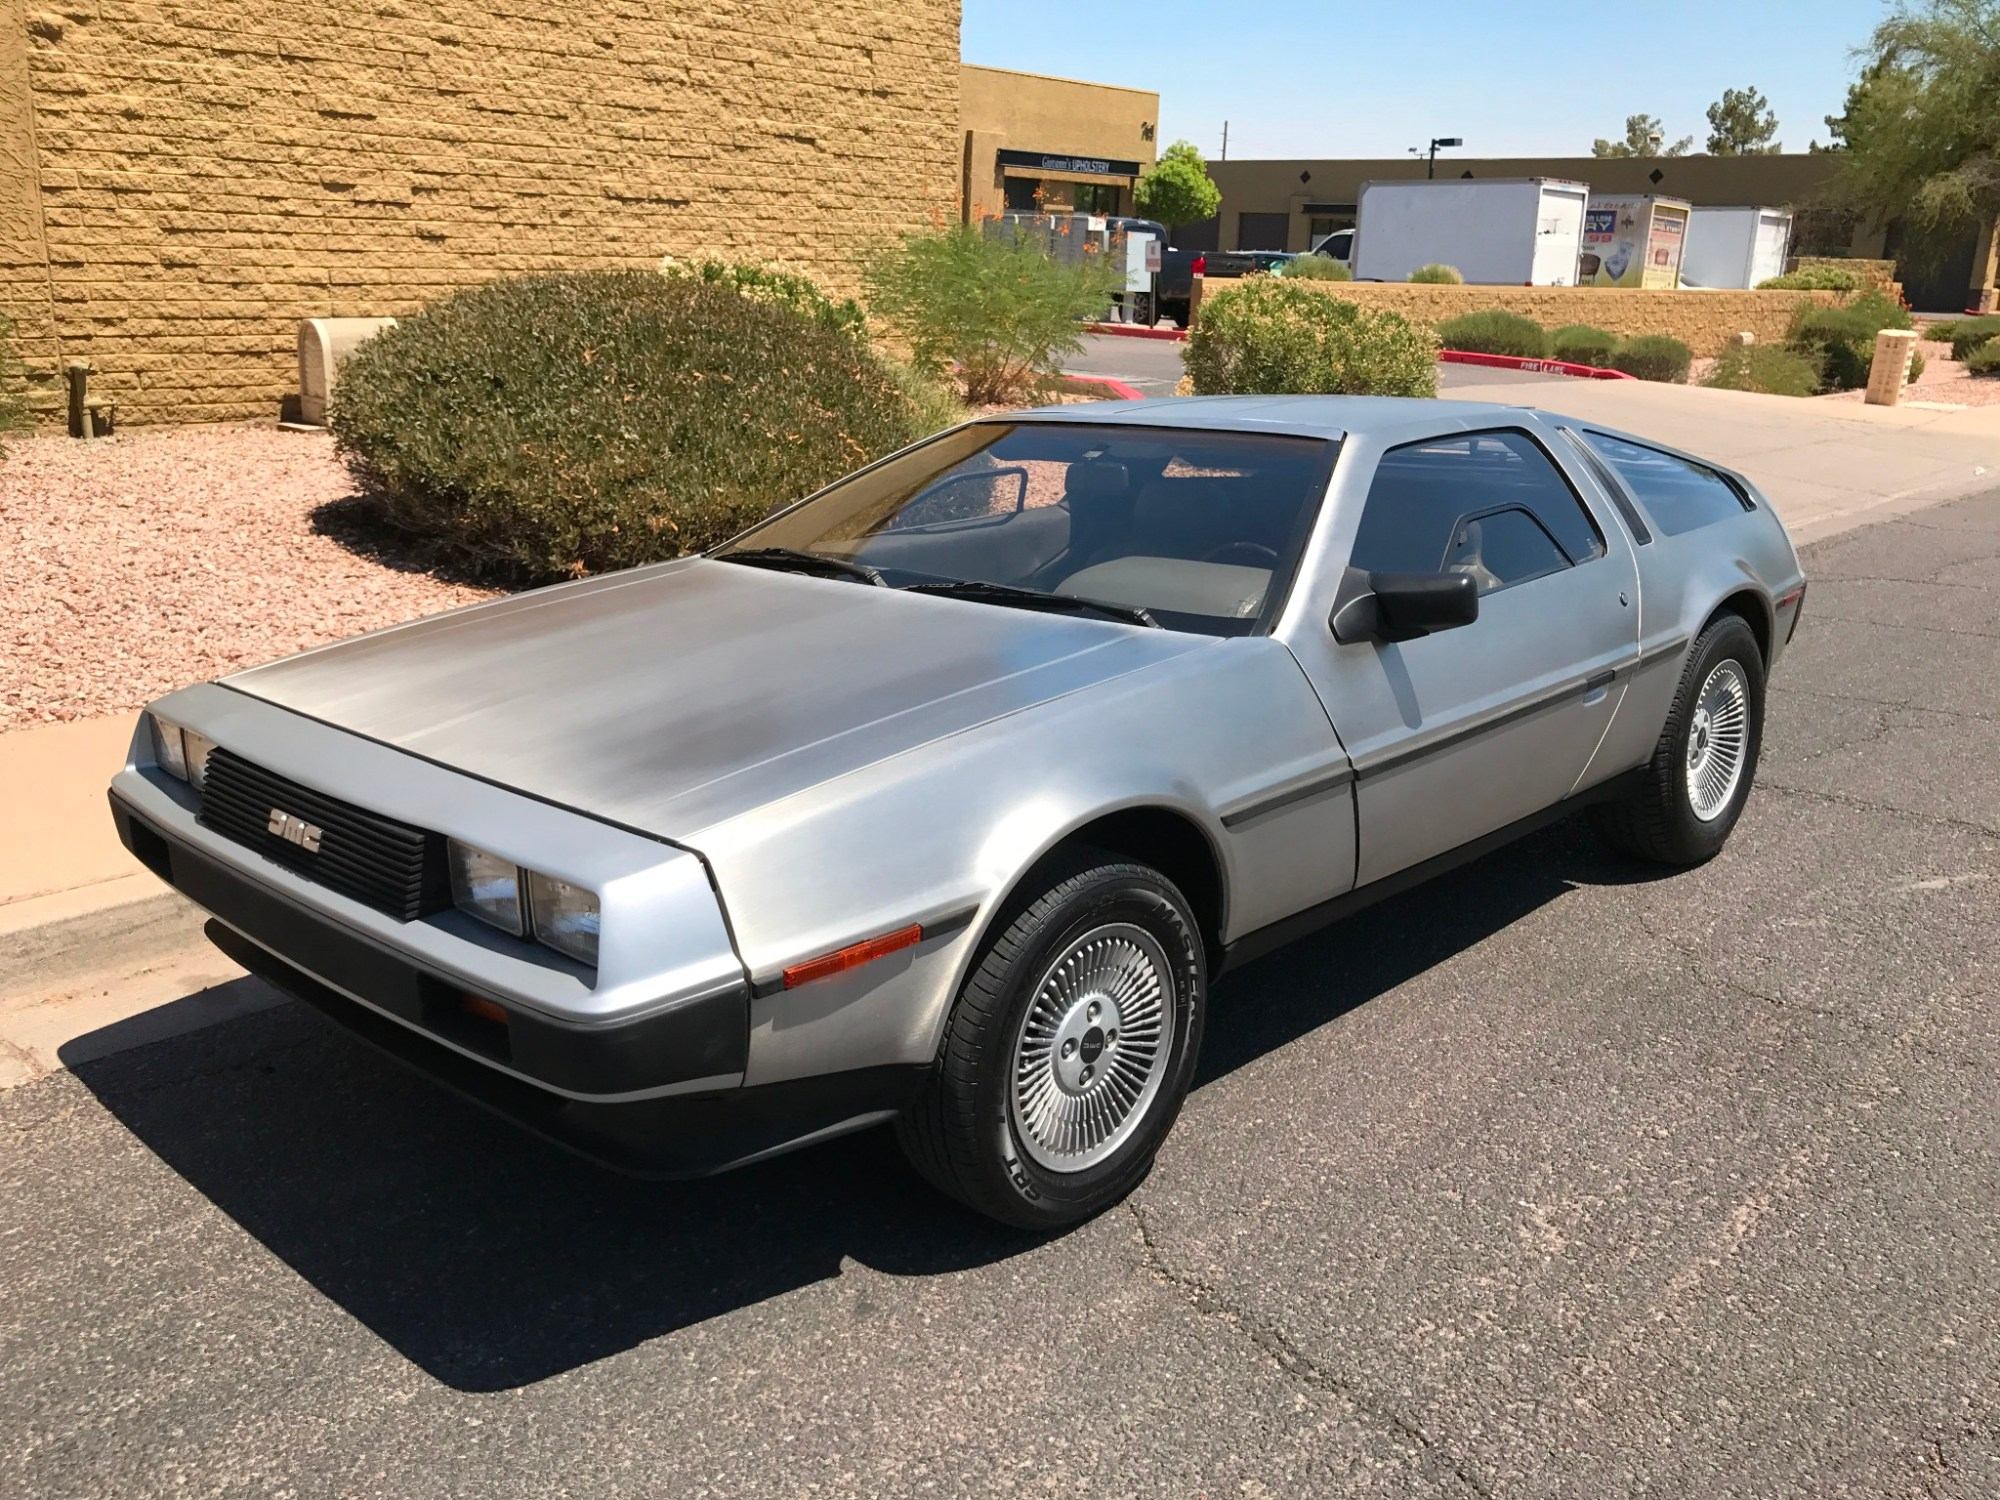 hight resolution of 1981 delorean dmc 12 5 speed for sale on bat auctions closed on july 12 2017 lot 4 948 bring a trailer